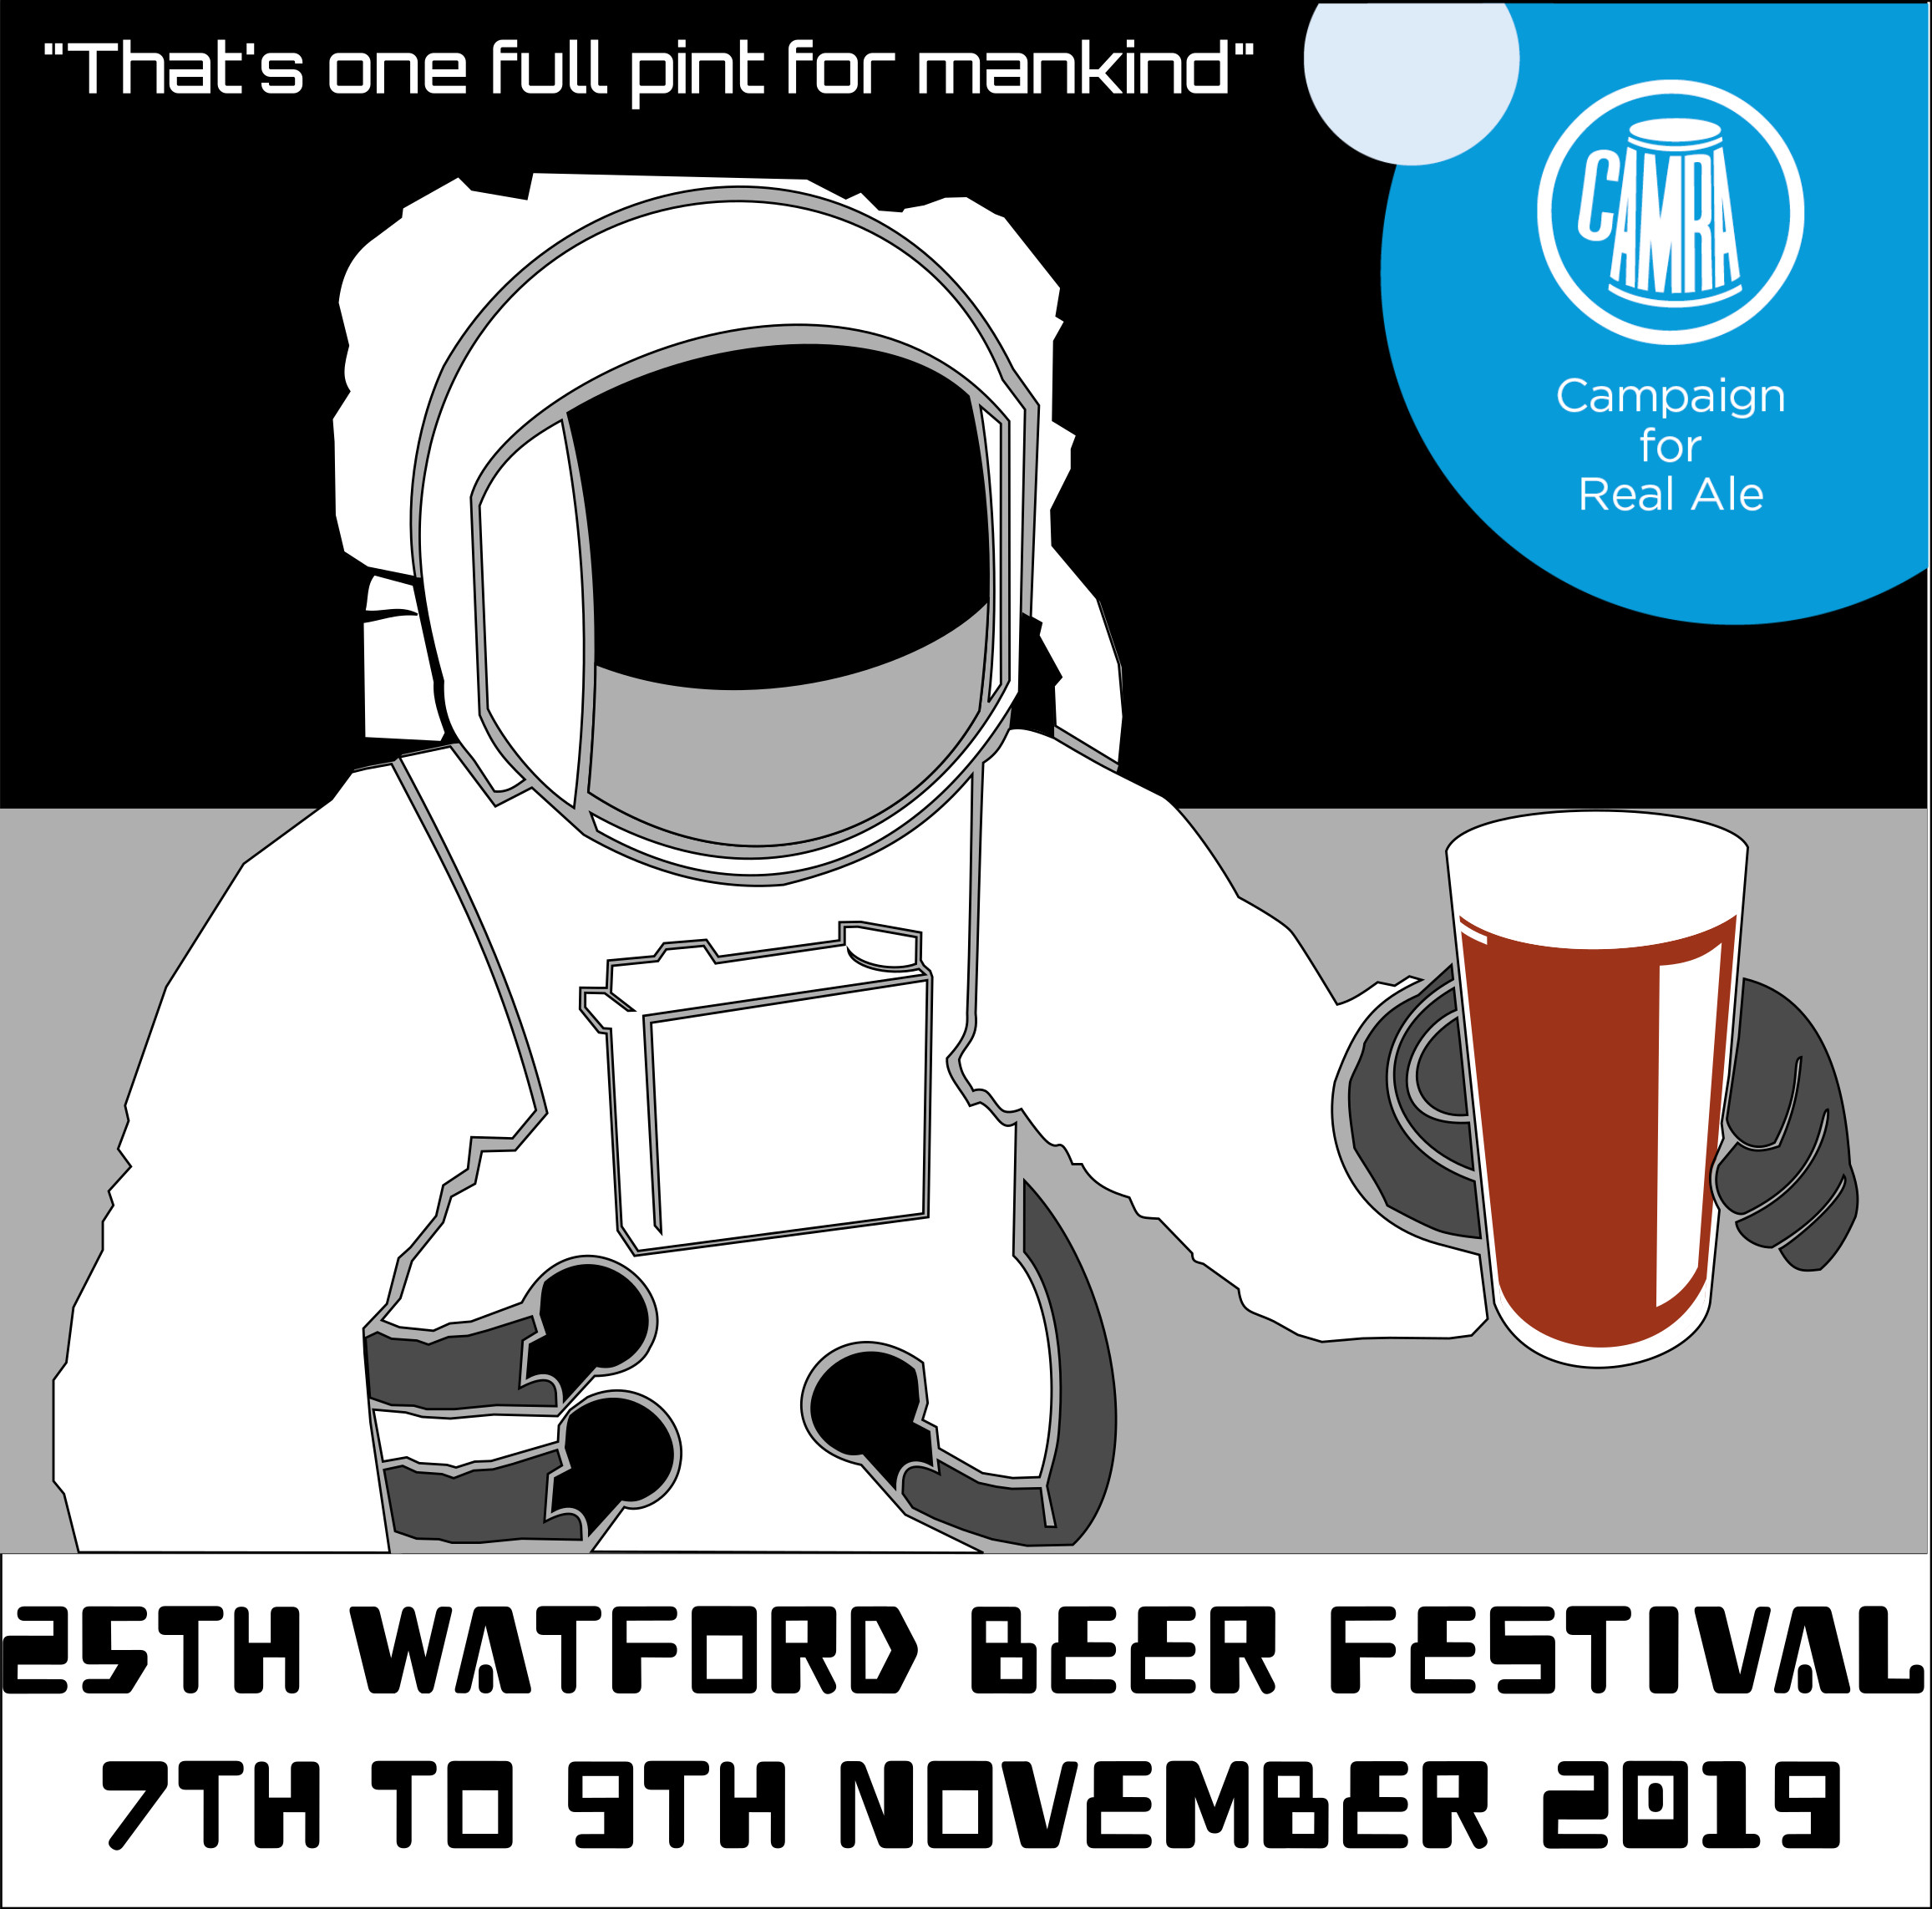 25th Watford Beer Festival